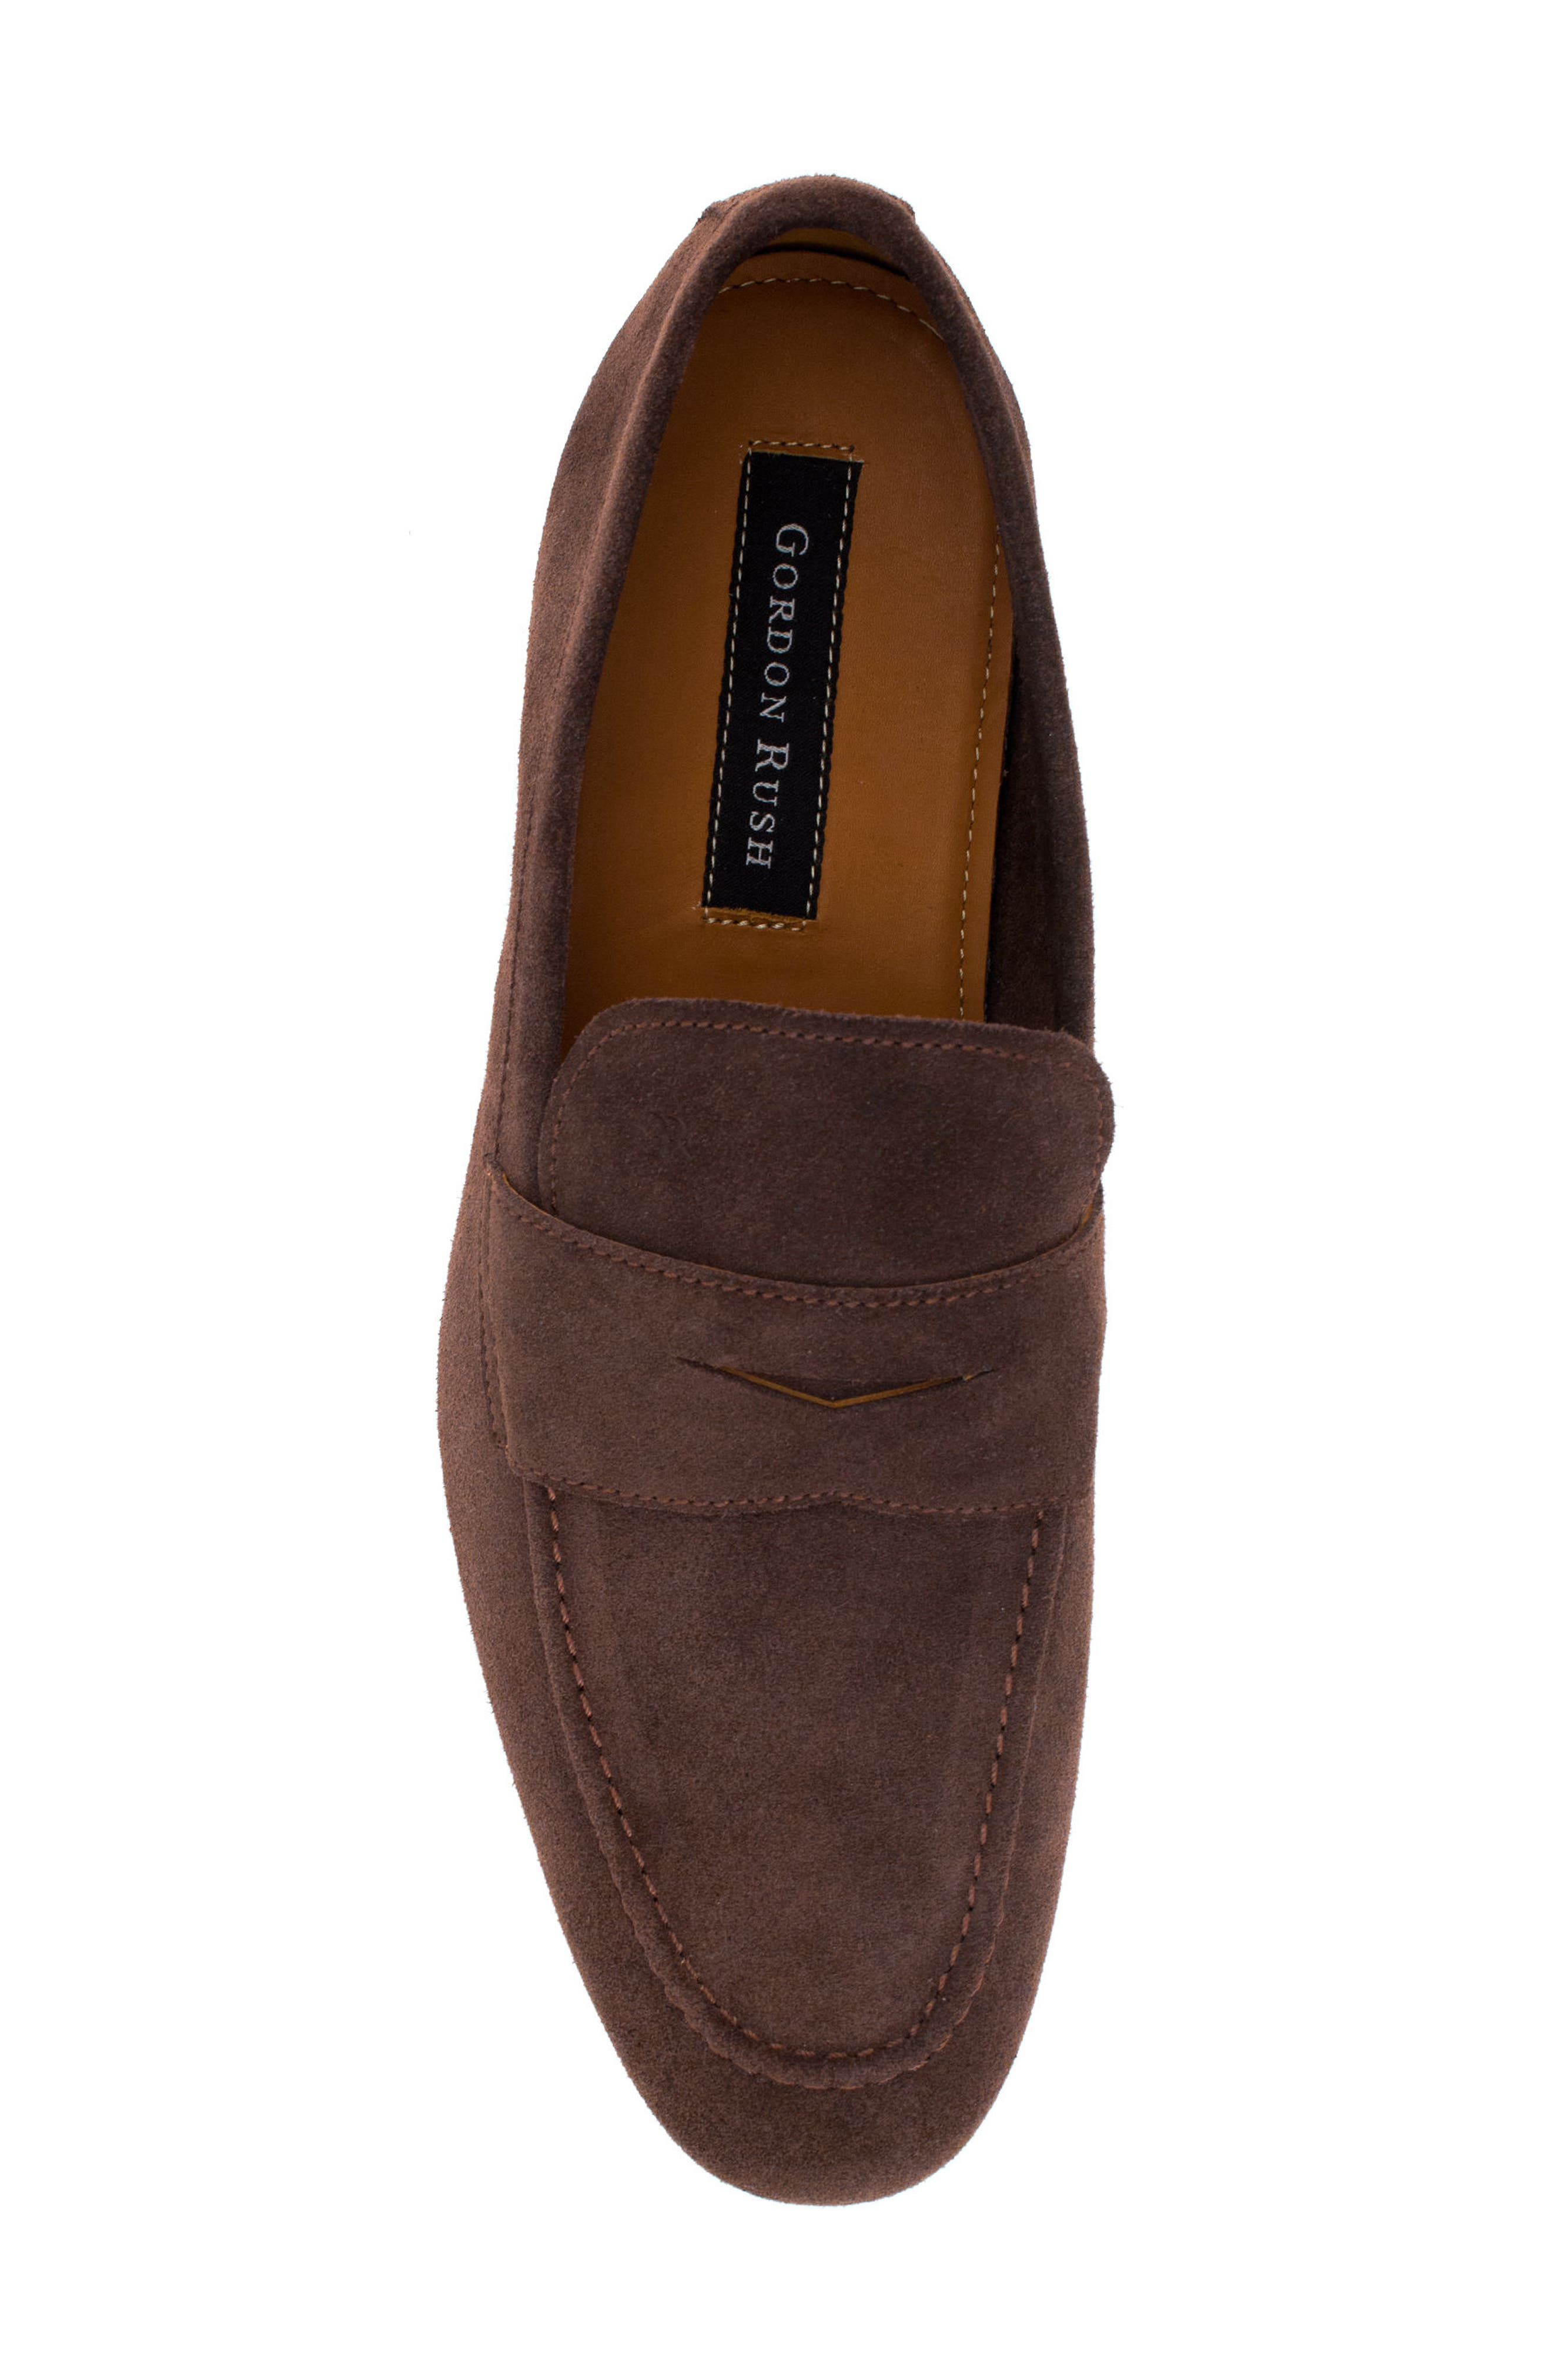 Wilfred Penny Loafer,                             Alternate thumbnail 5, color,                             206